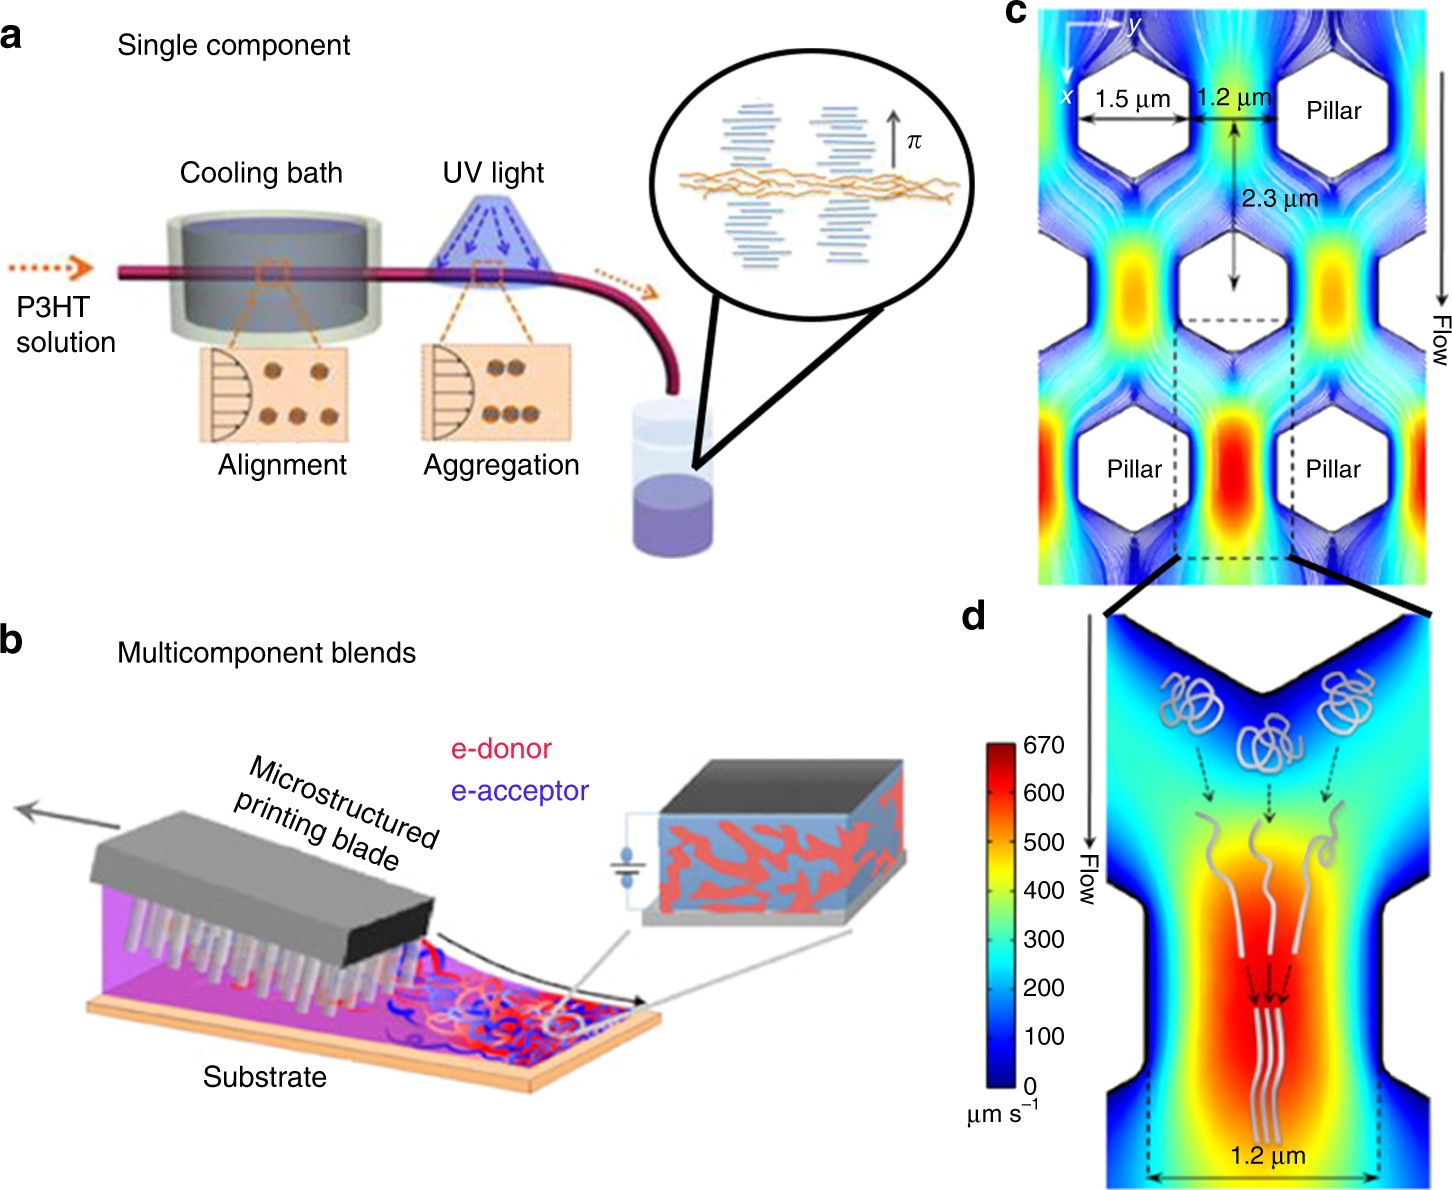 The meniscus-guided deposition of semiconducting polymers